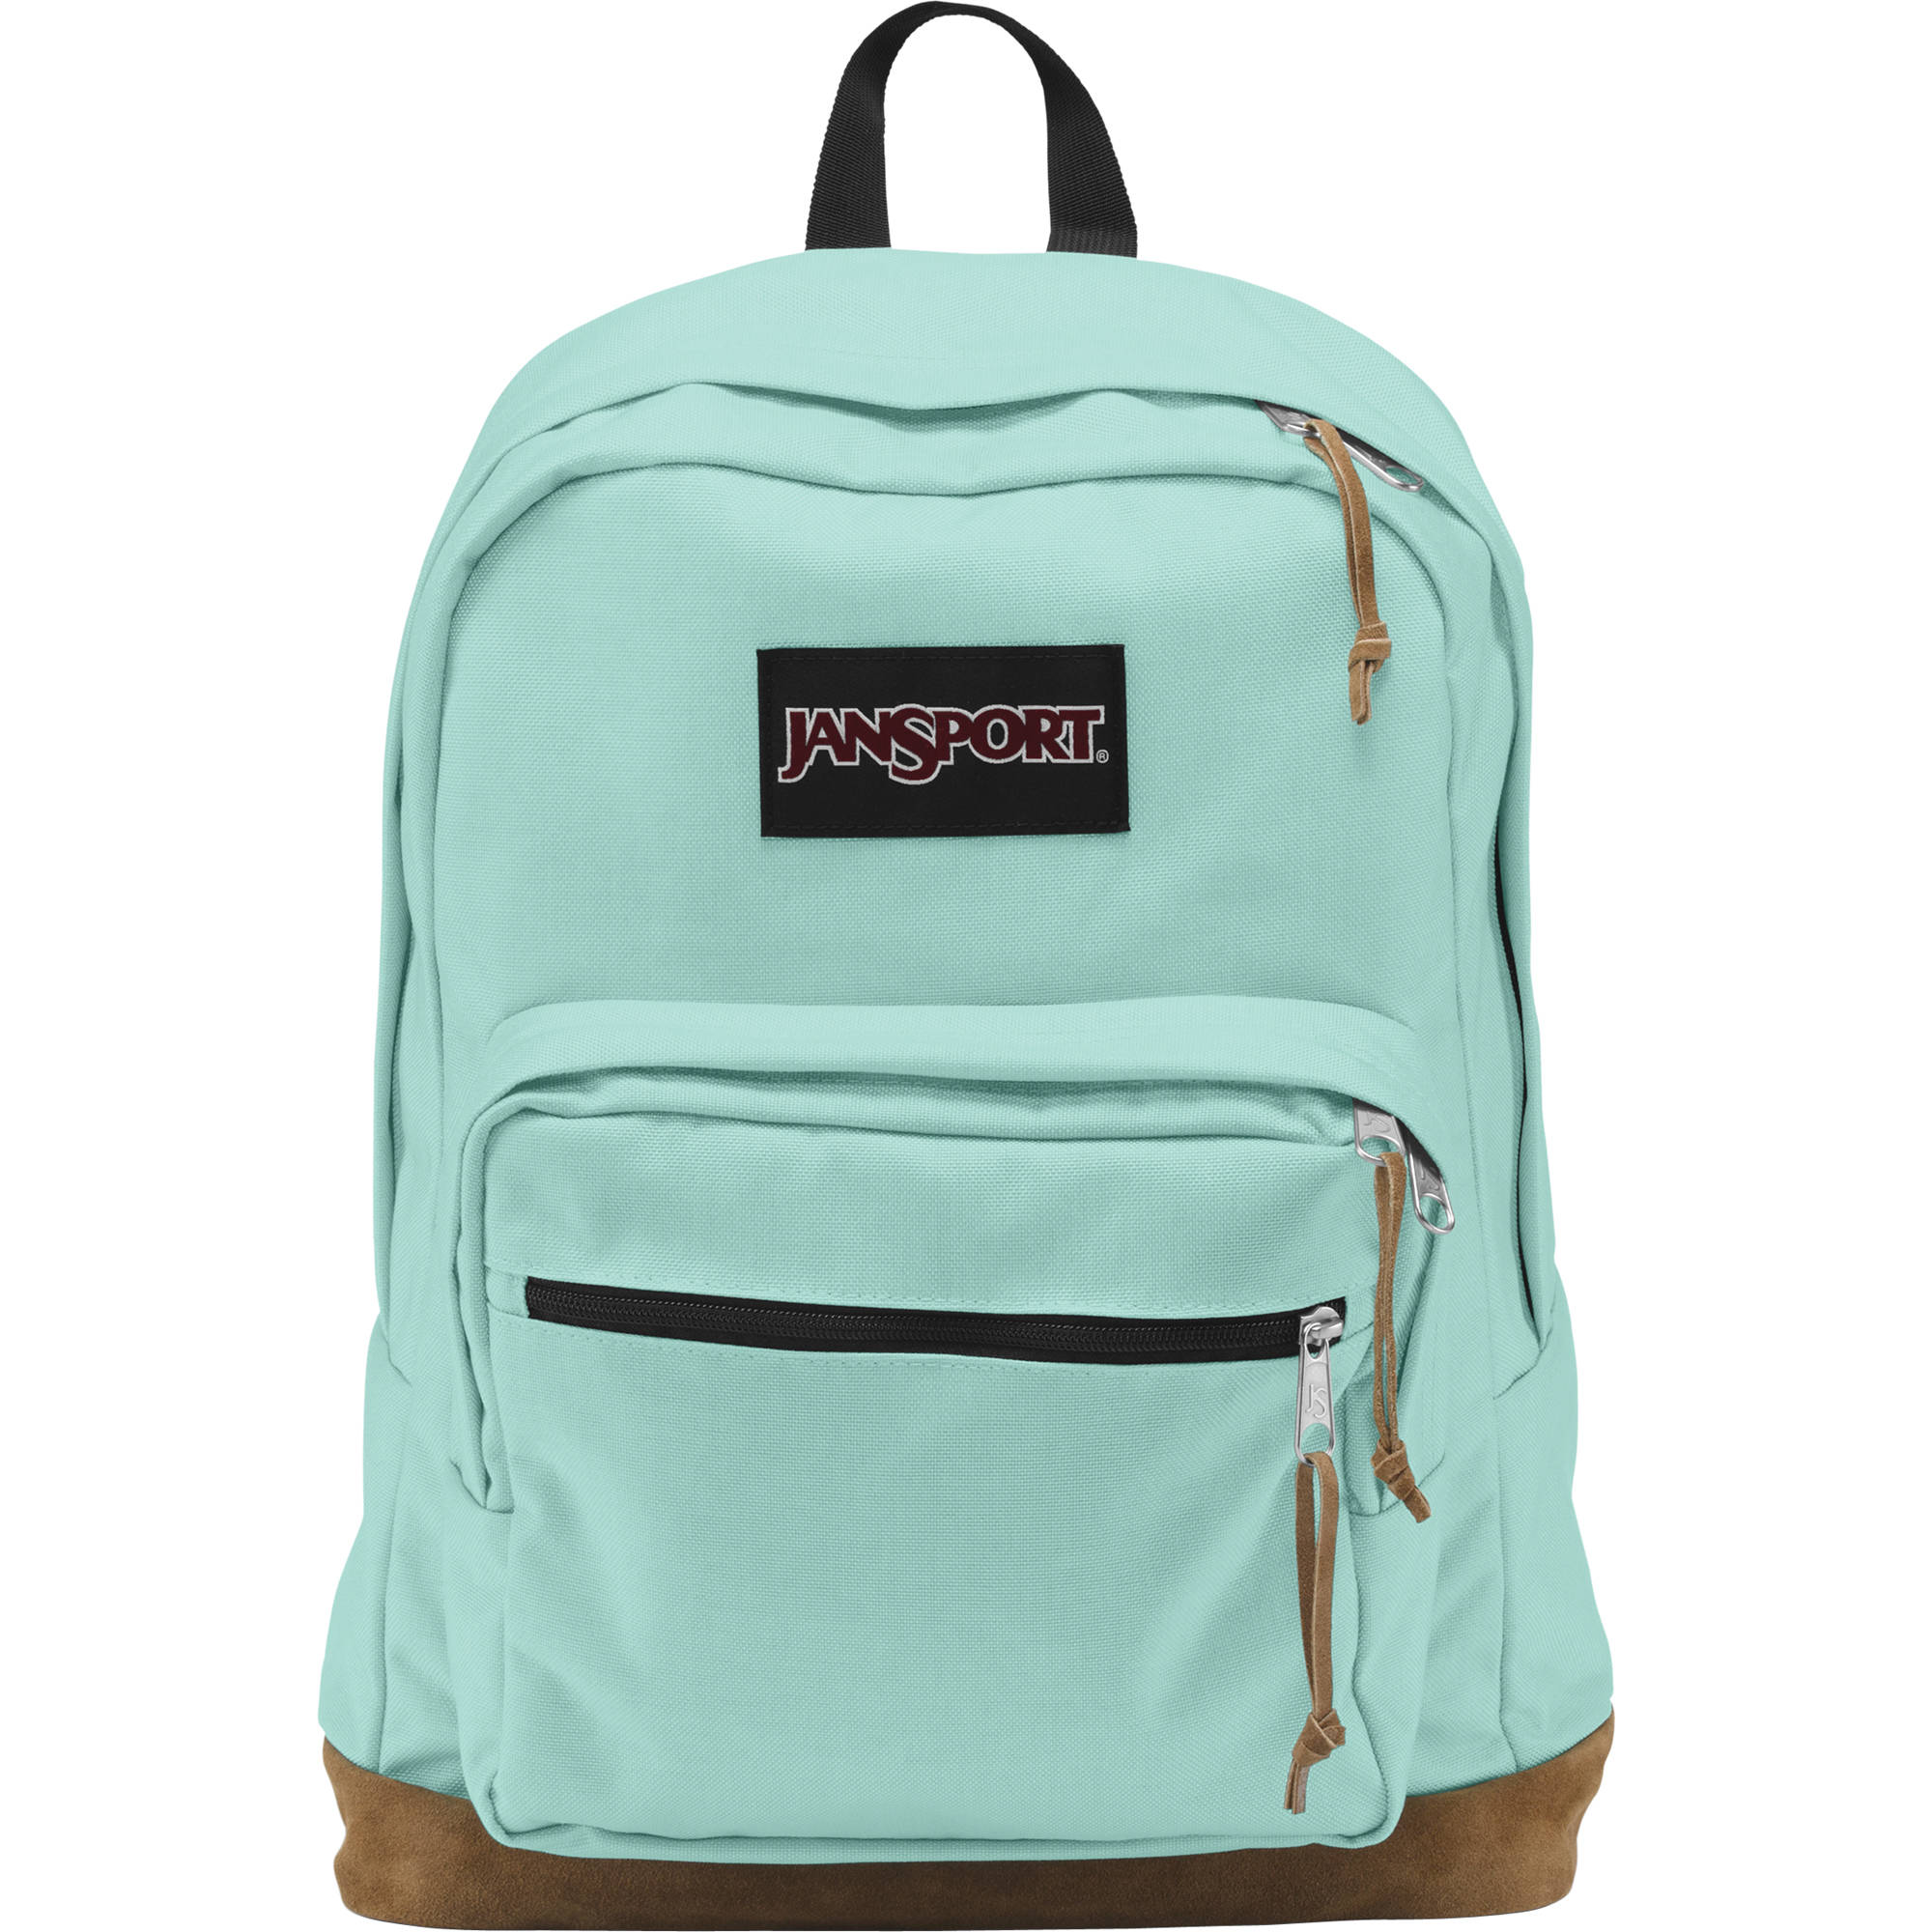 37fd6609c6 Jansport Right Pack Backpack Amazon